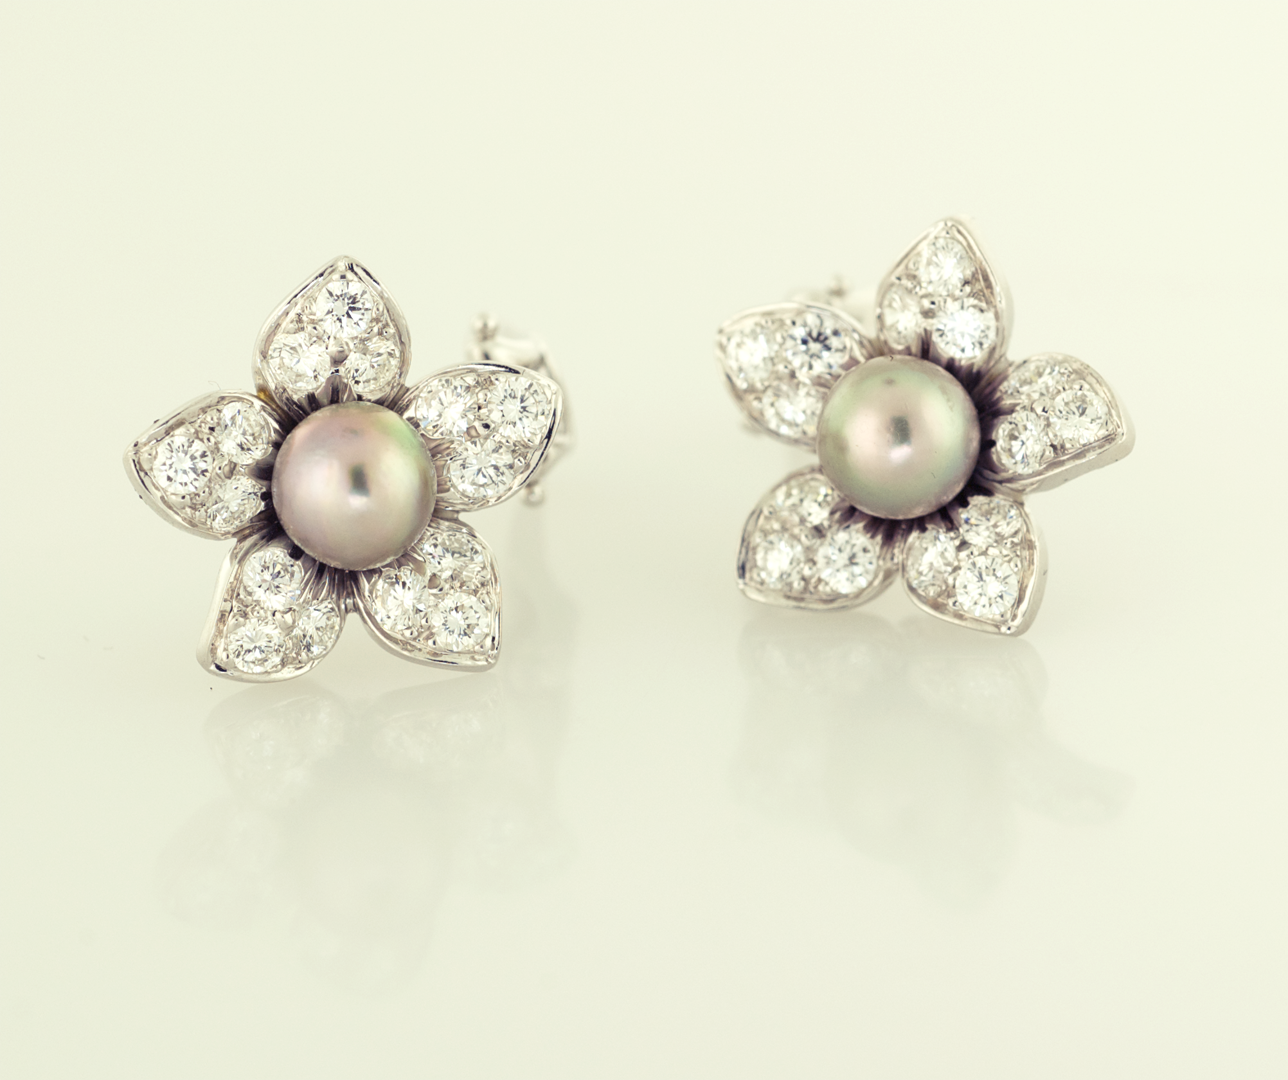 Black Pearl 65mm And 180ct Pavé Diamond Earrings Floral Motif